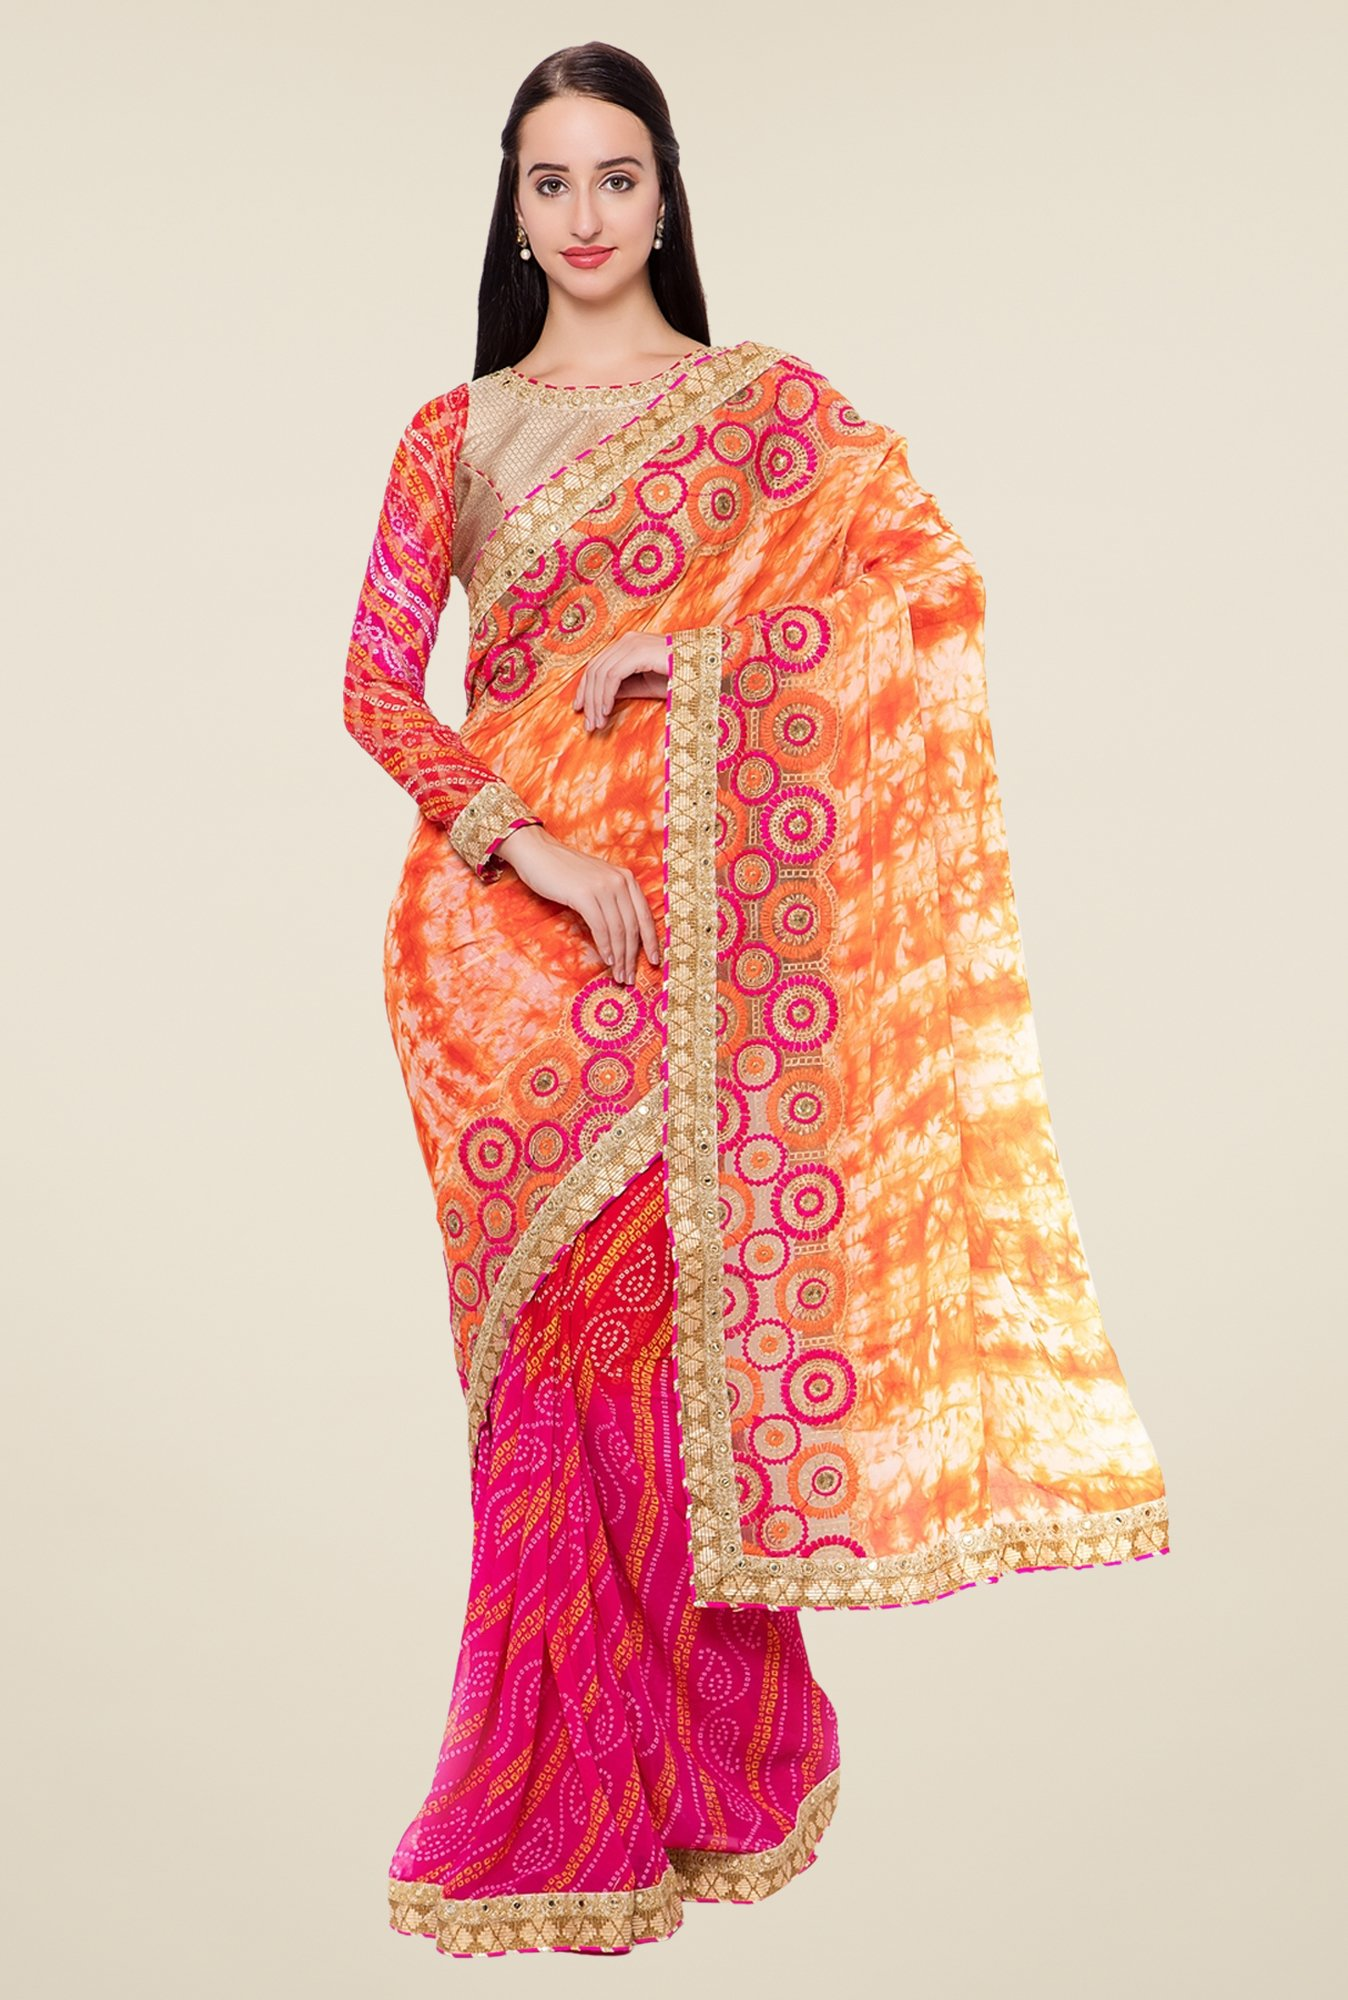 Triveni Pink & Orange Bandhani Faux Georgette Chiffon Saree